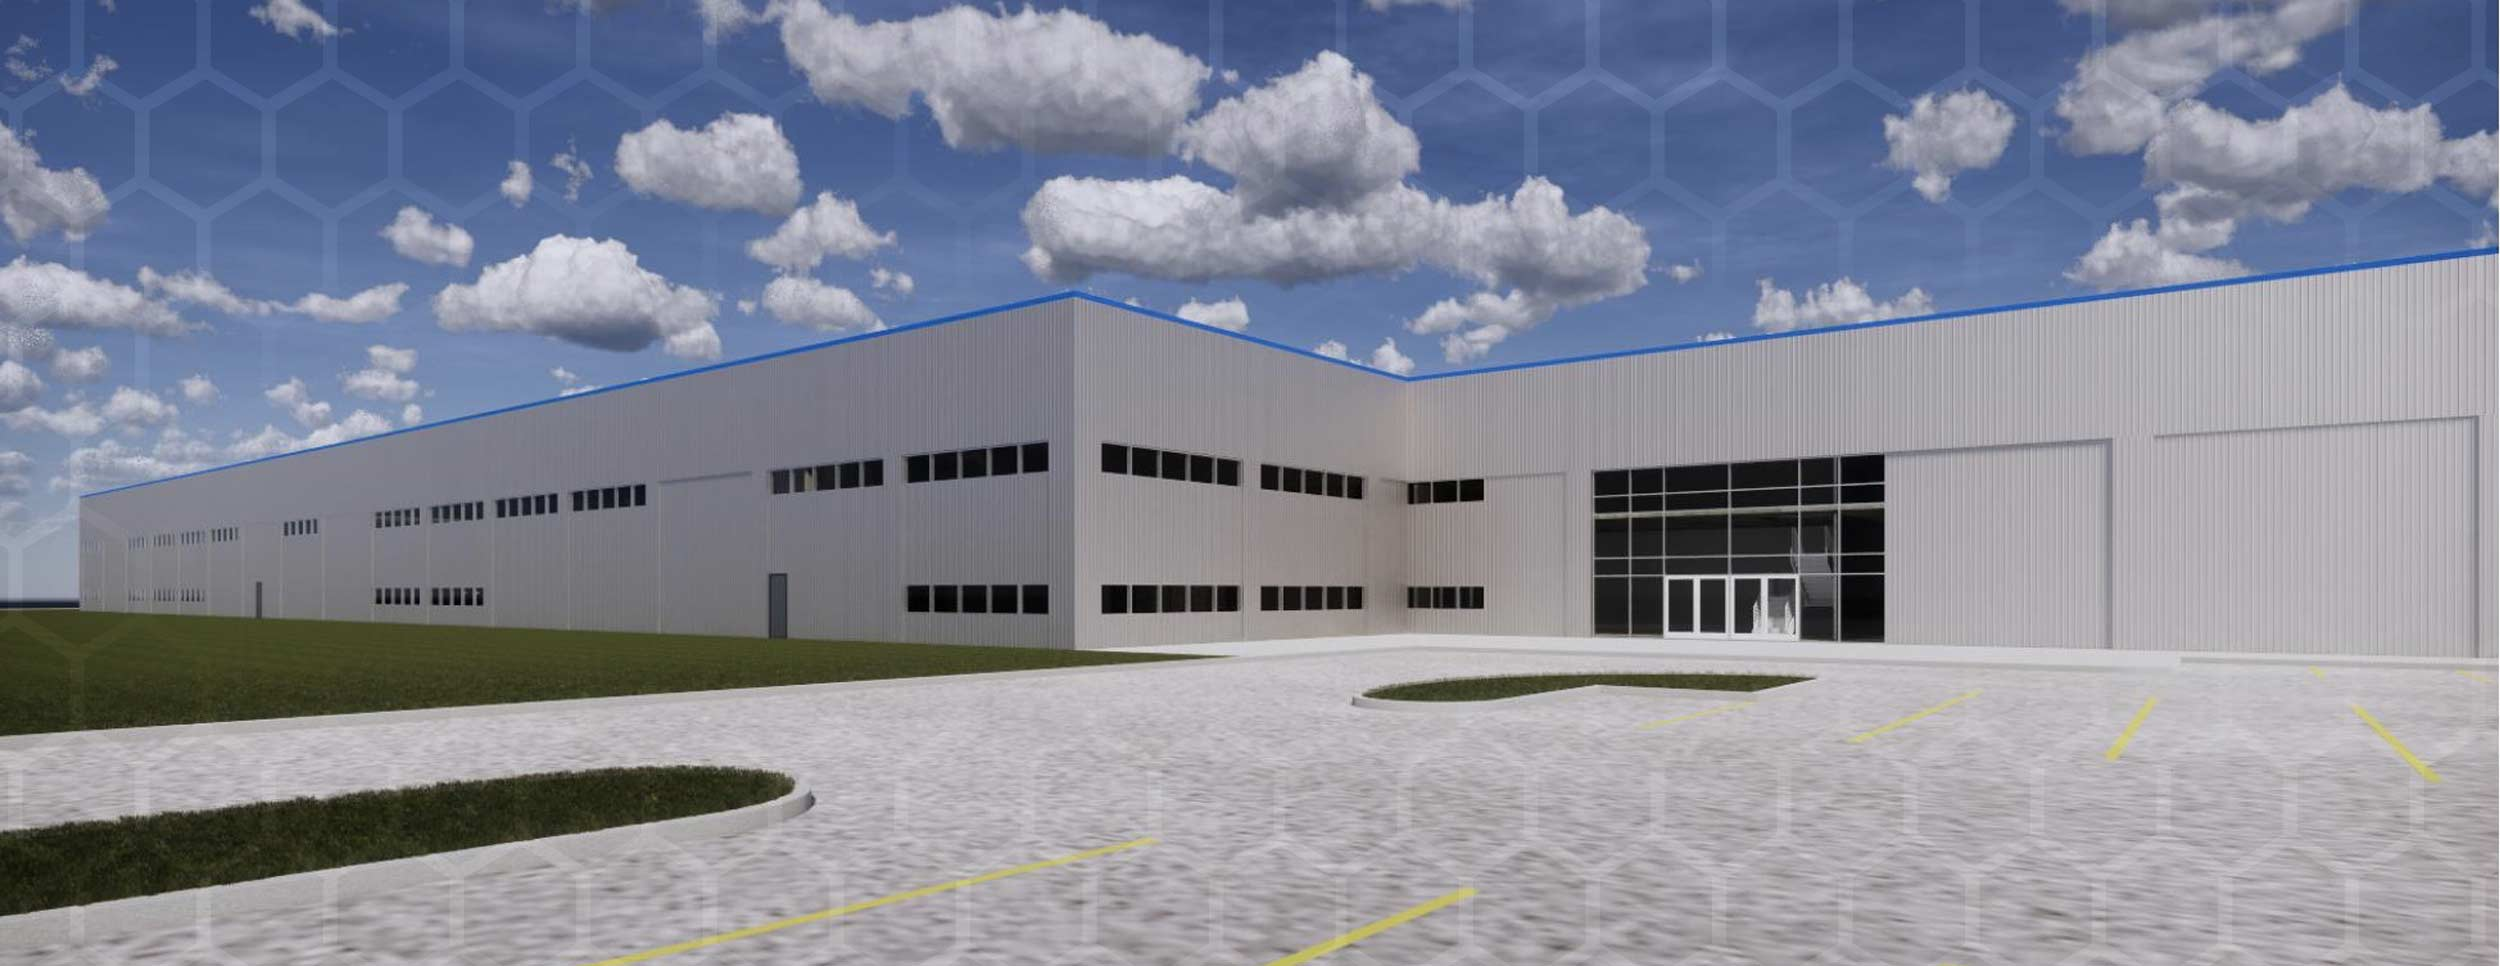 CanUSA Exterior photo of their warehouse and office building that has white steel walls and windows around the corner for 1st and second floor offices.